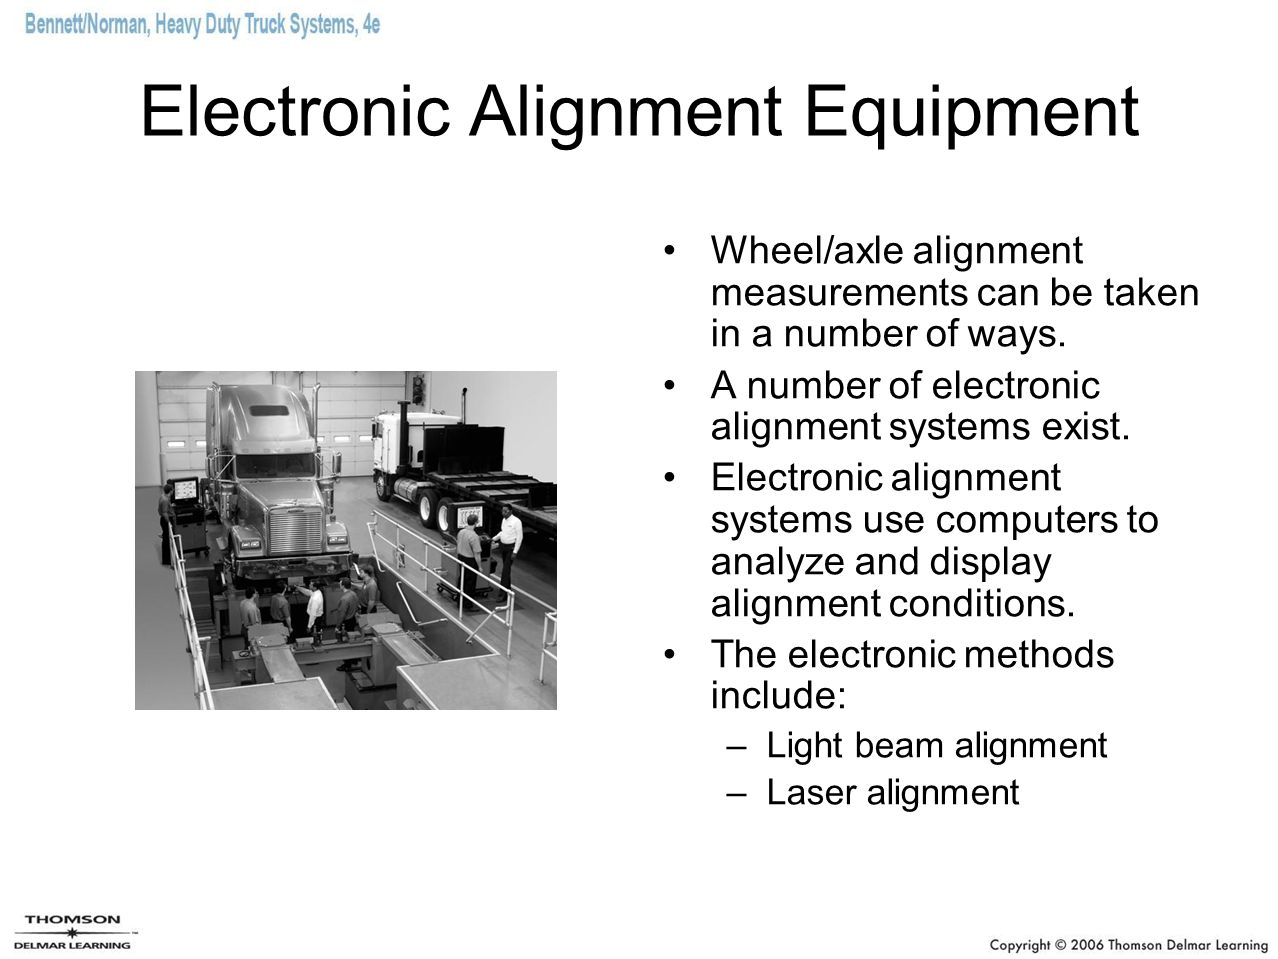 Beam Alignment Systems Laser beam equipment projects light beams onto charts, scales, and sensors to measure toe, caster, and camber.